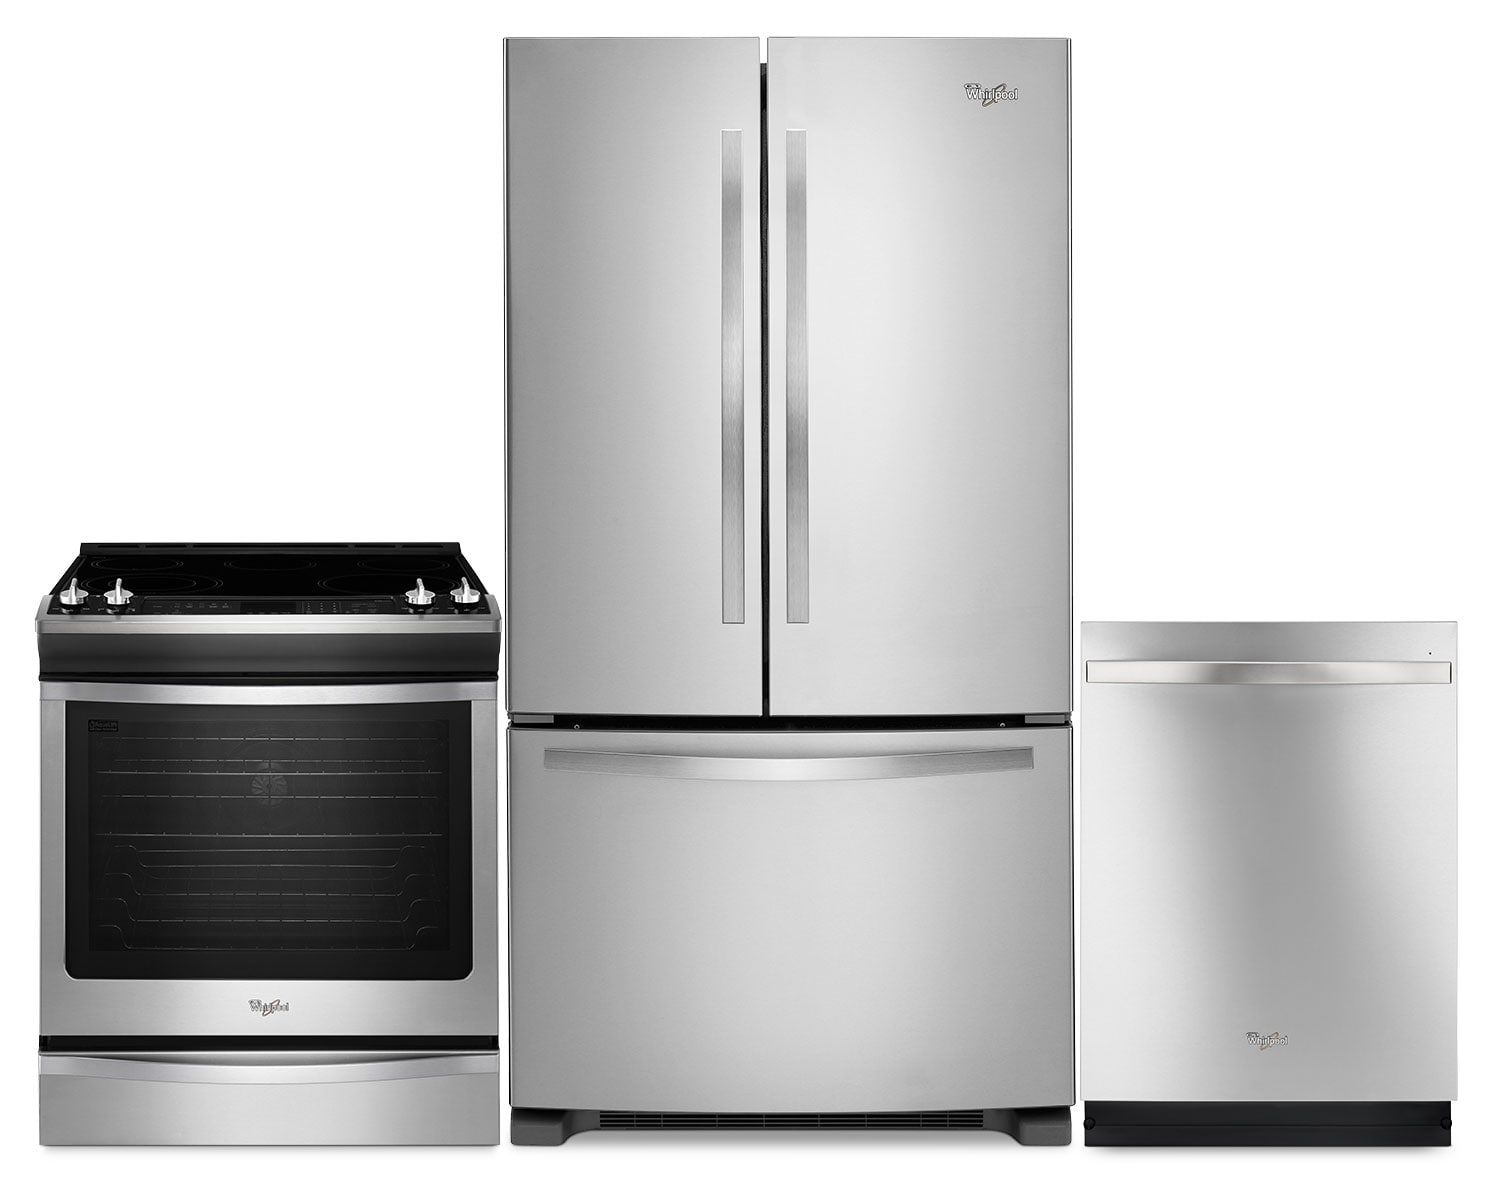 Cooking Products - Whirlpool 22 Cu. Ft. Refrigerator, 6.2 Cu. Ft. Range and Built-In Dishwasher – Stainless Steel